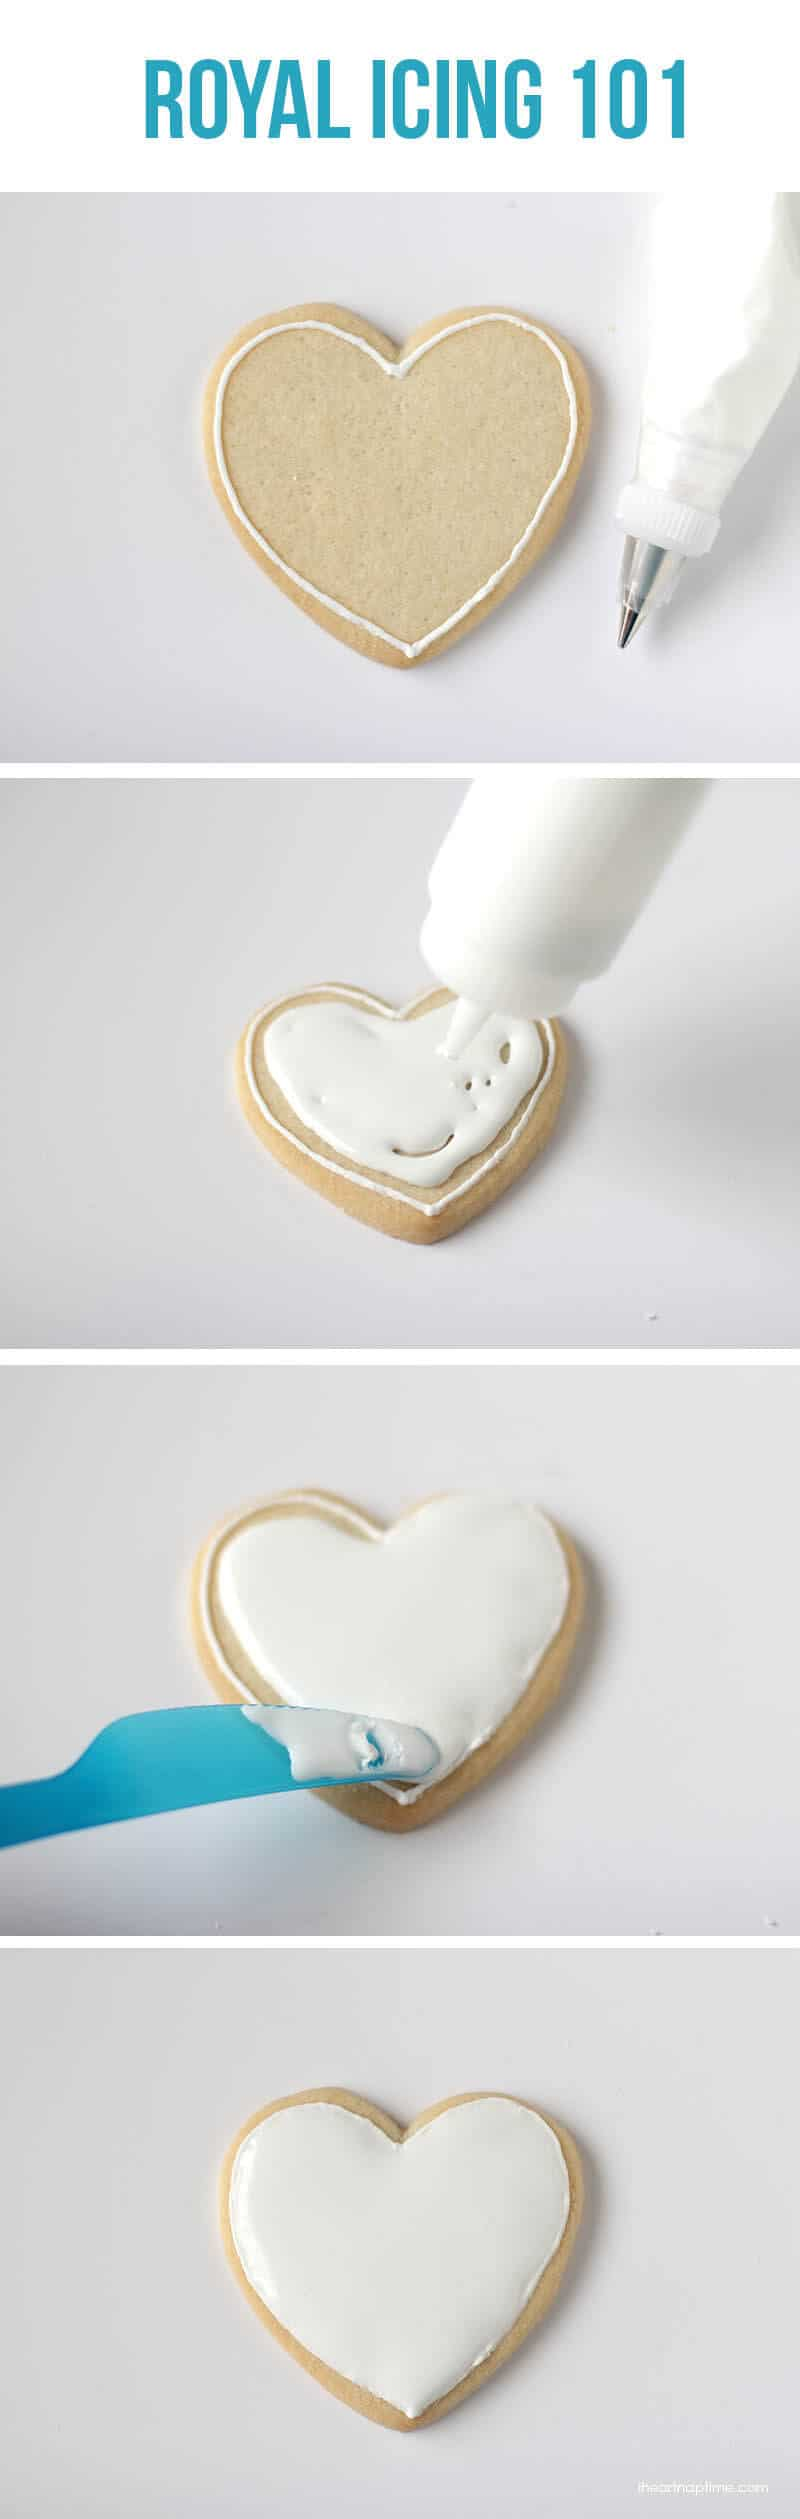 "Royal icing 101 on iheartnaptime.com ...learn the basics to creating ""fancy"" cookies! #cookies #tips"